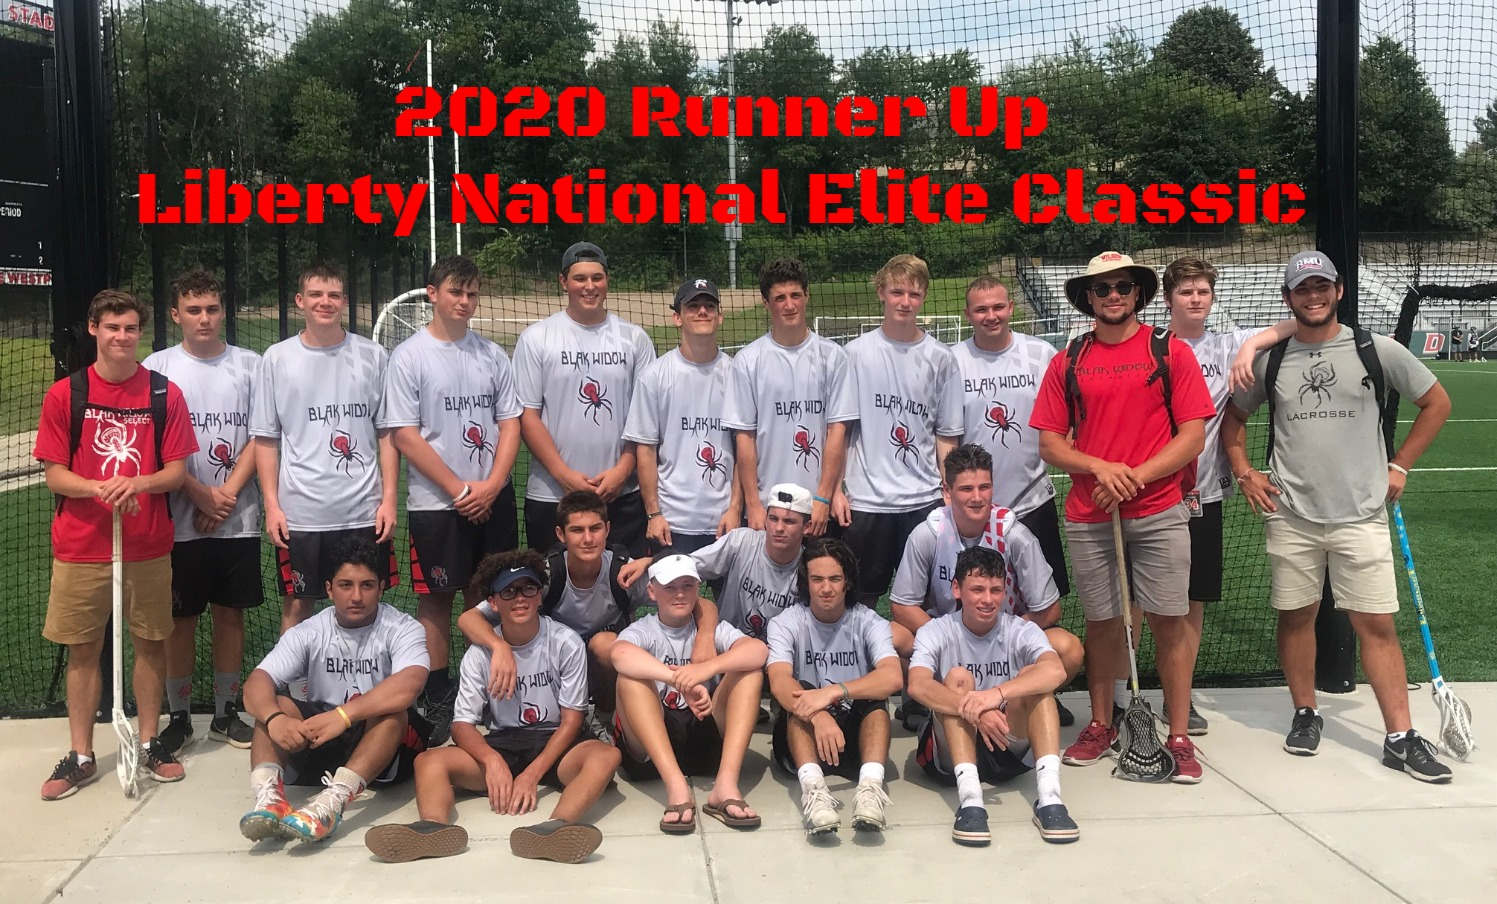 2020 Runner-Up Liberty National